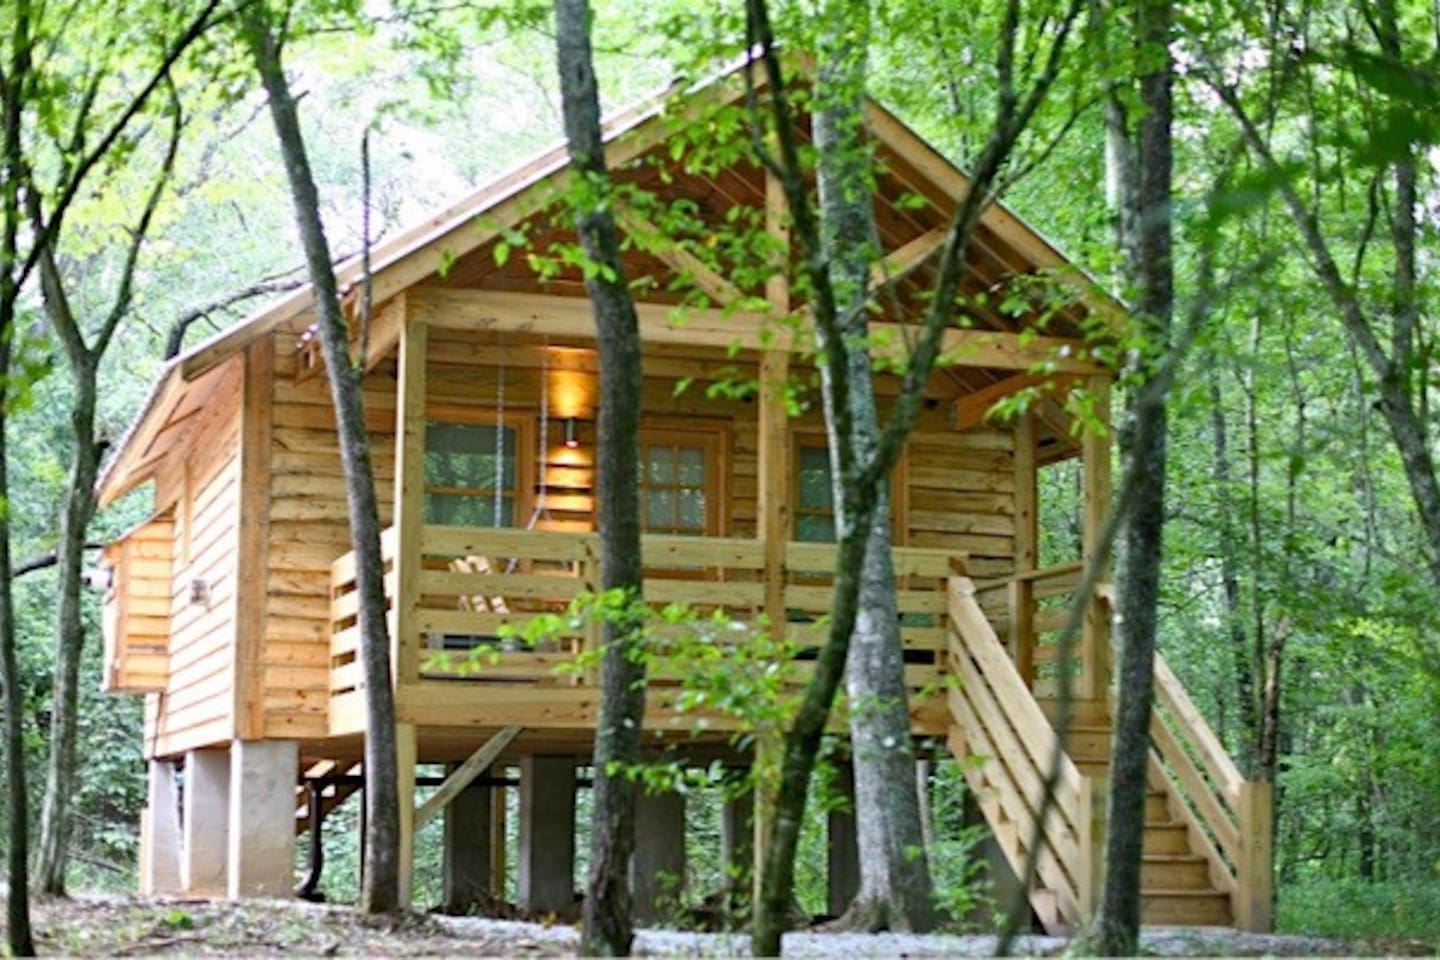 Back Porch of Cabin #1